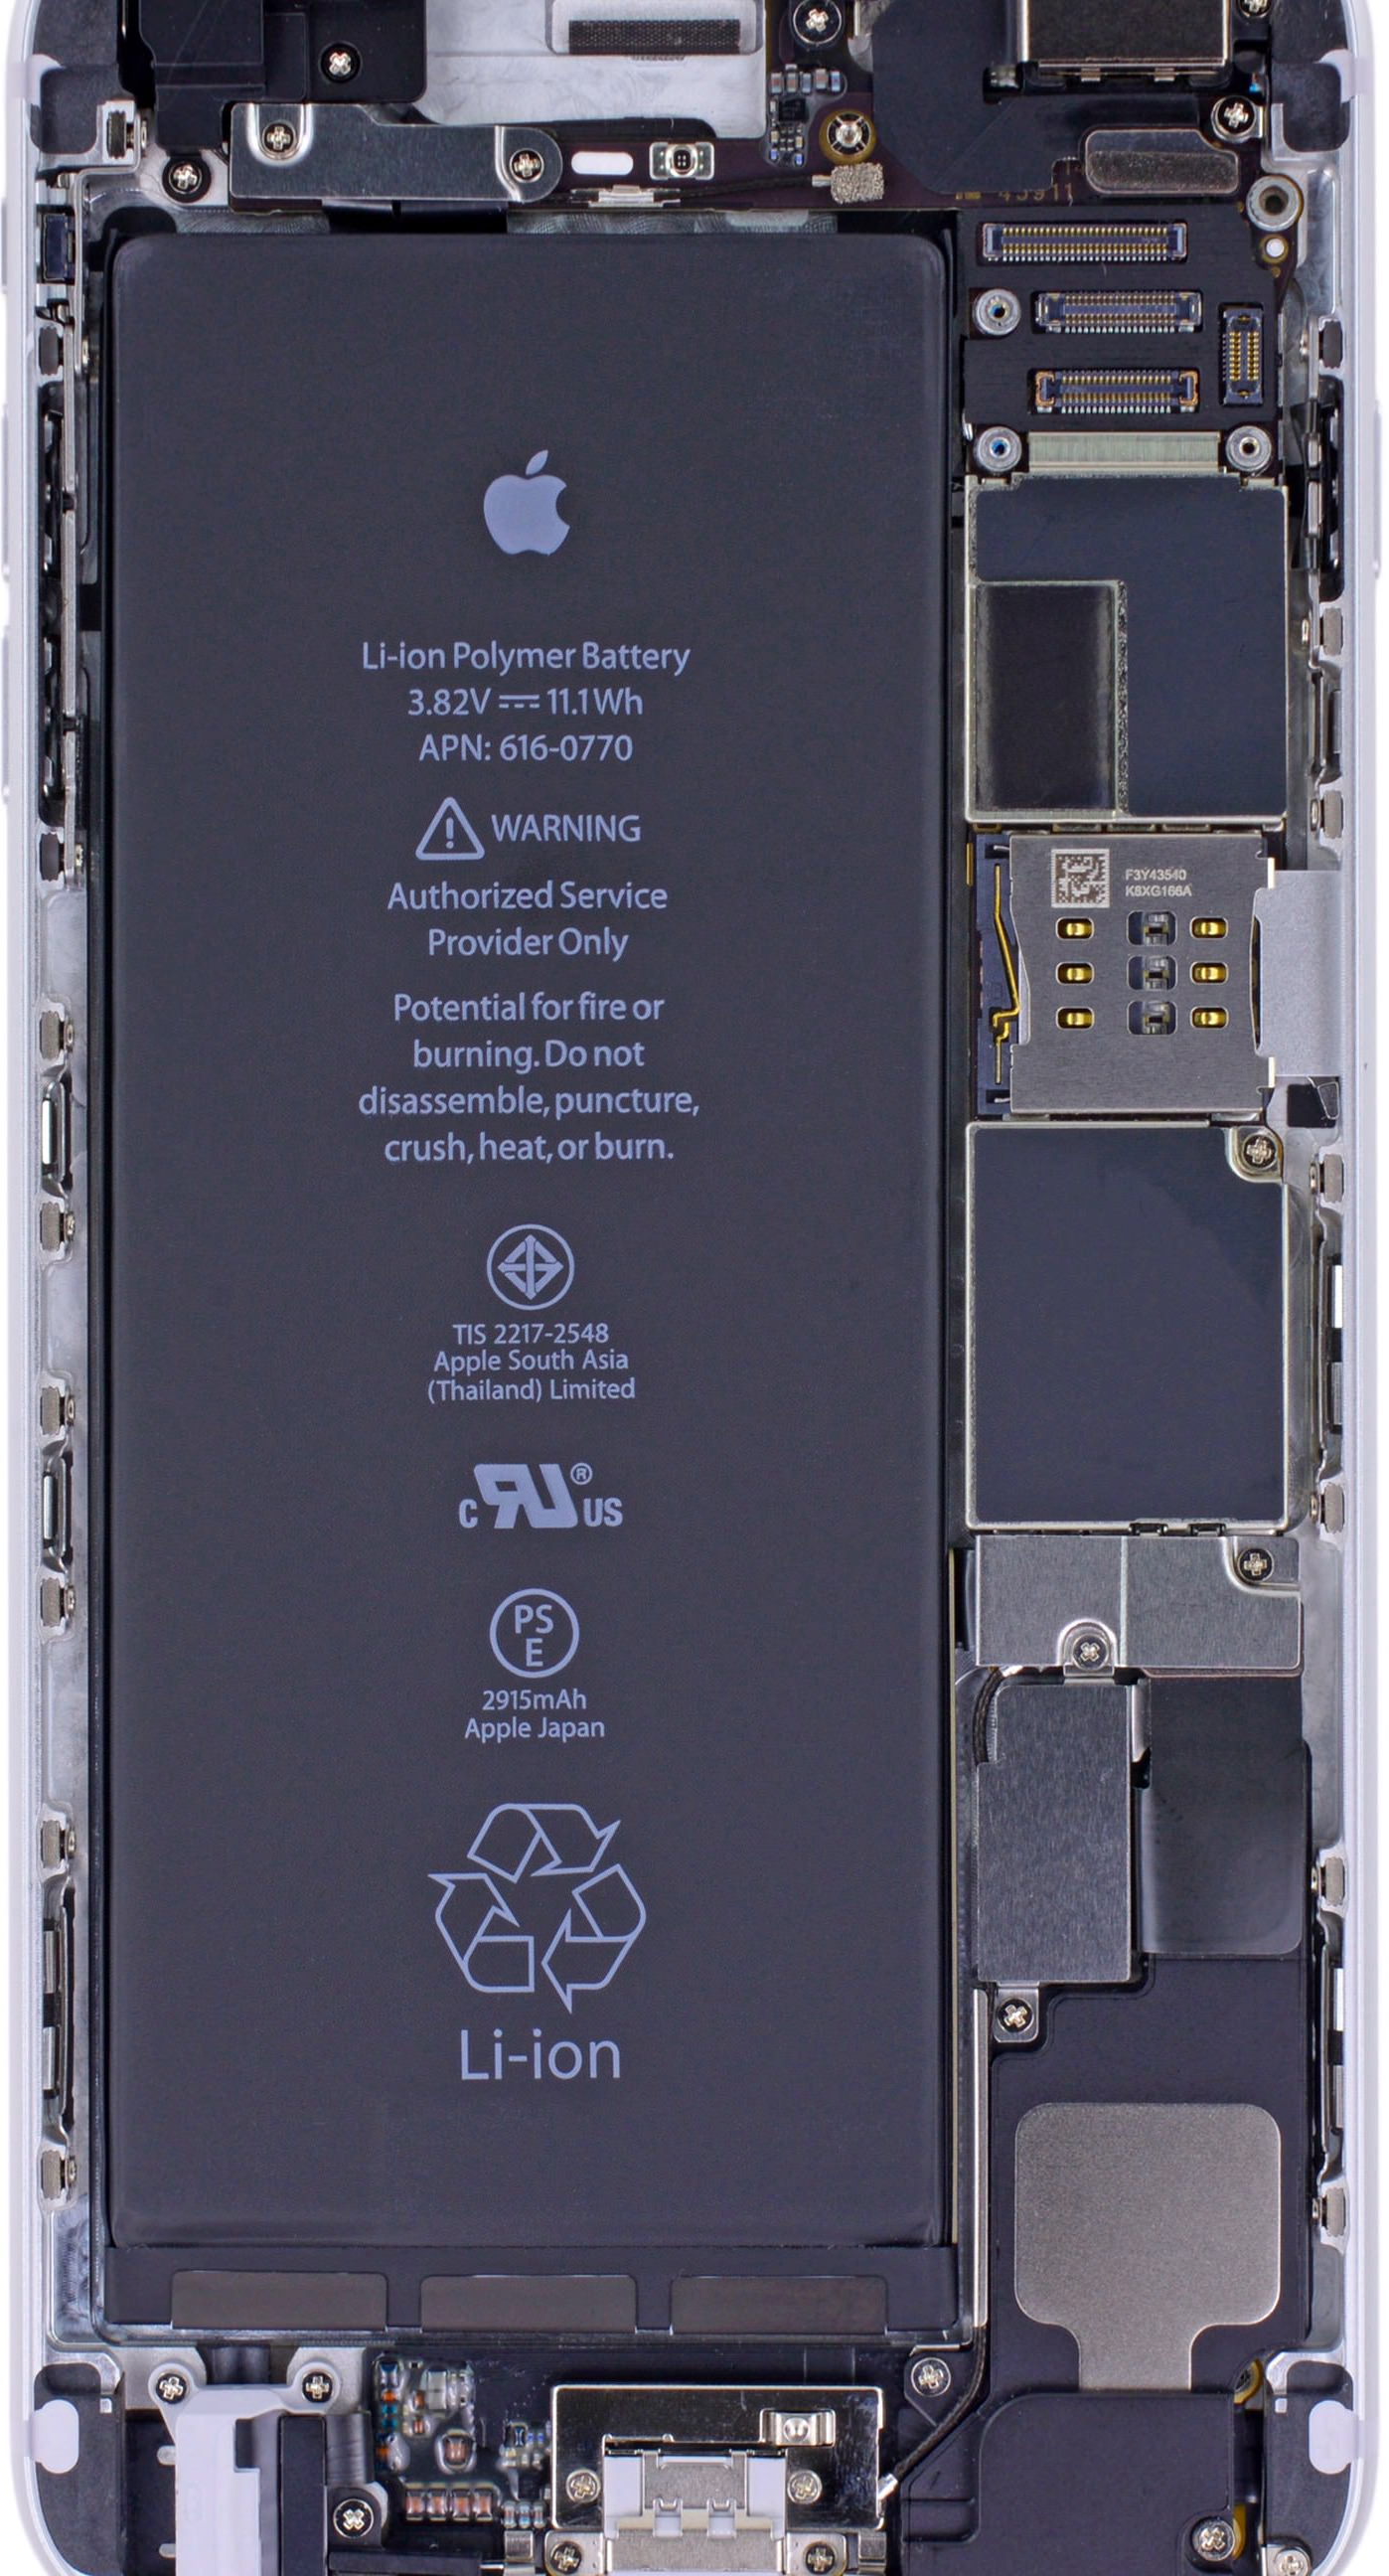 Iphone 8 Plus Internals Wallpaper クールiphone6plus基板 Wallpaper Sc Iphone6splus壁紙